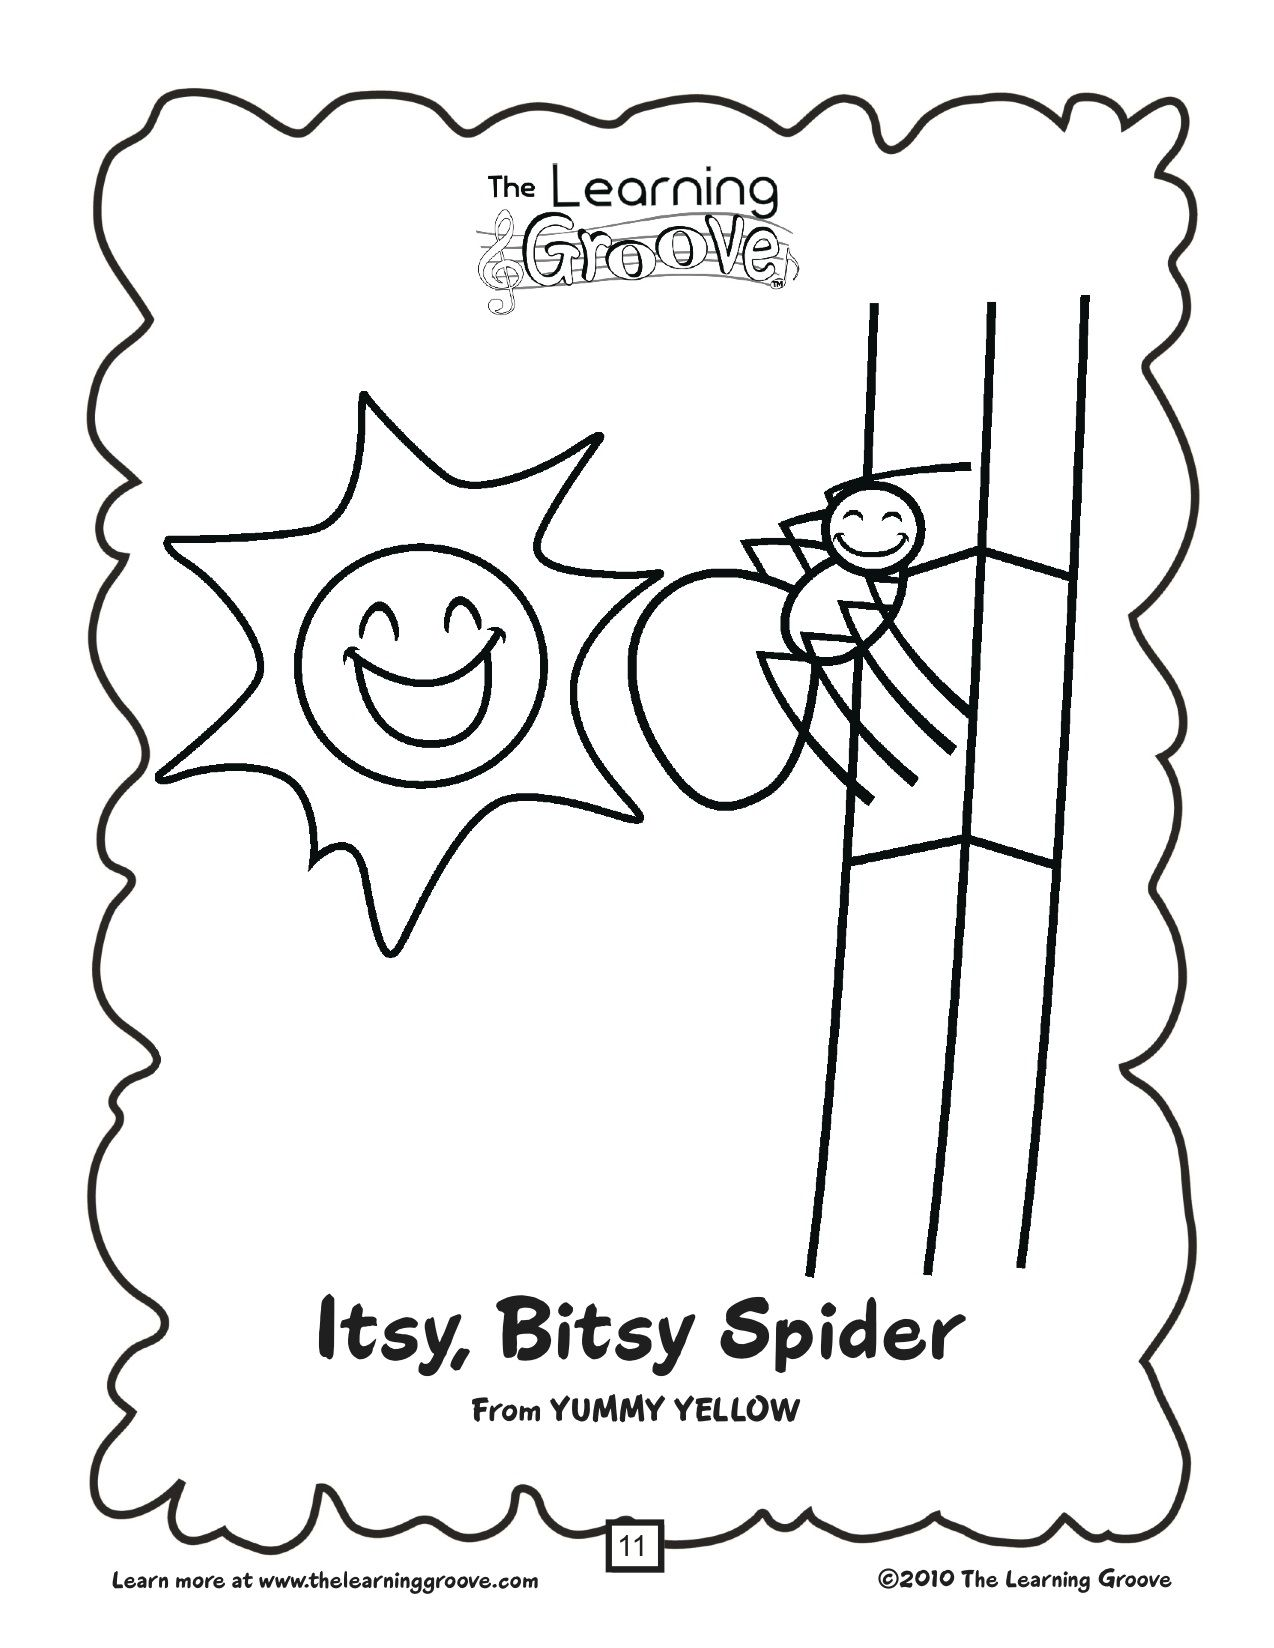 Did You Ever Wonder What Happened To The Itsy Bitsy Spider After